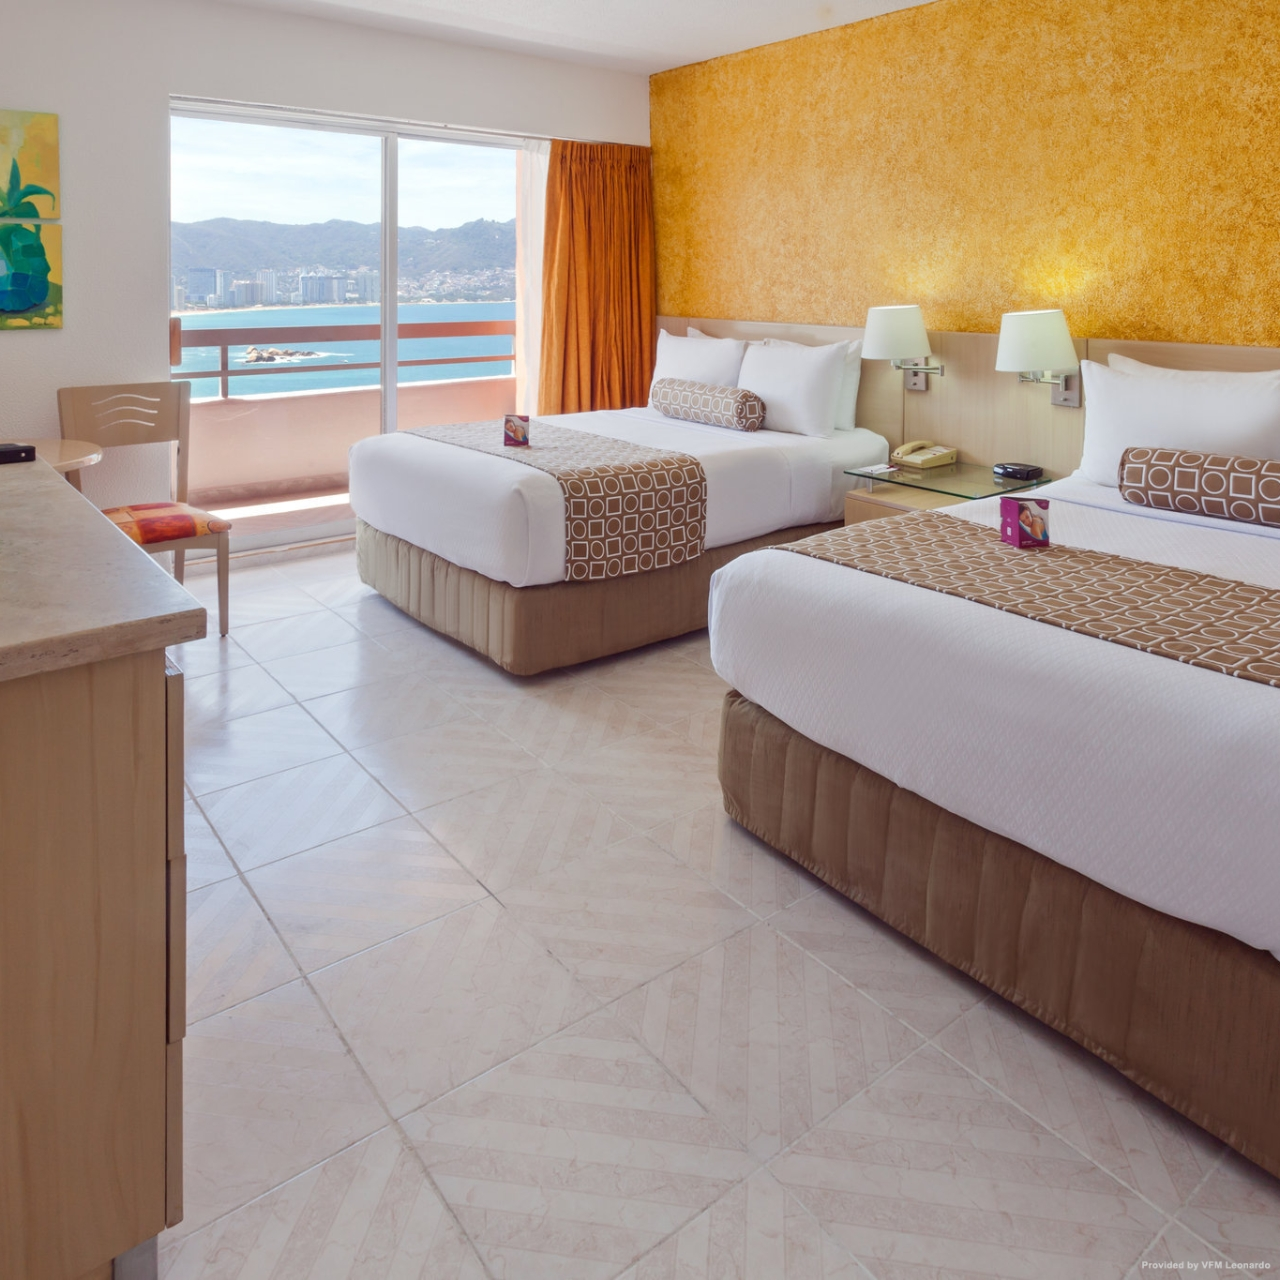 Gran Plaza Hotel Acapulco Mexico At Hrs With Free Services